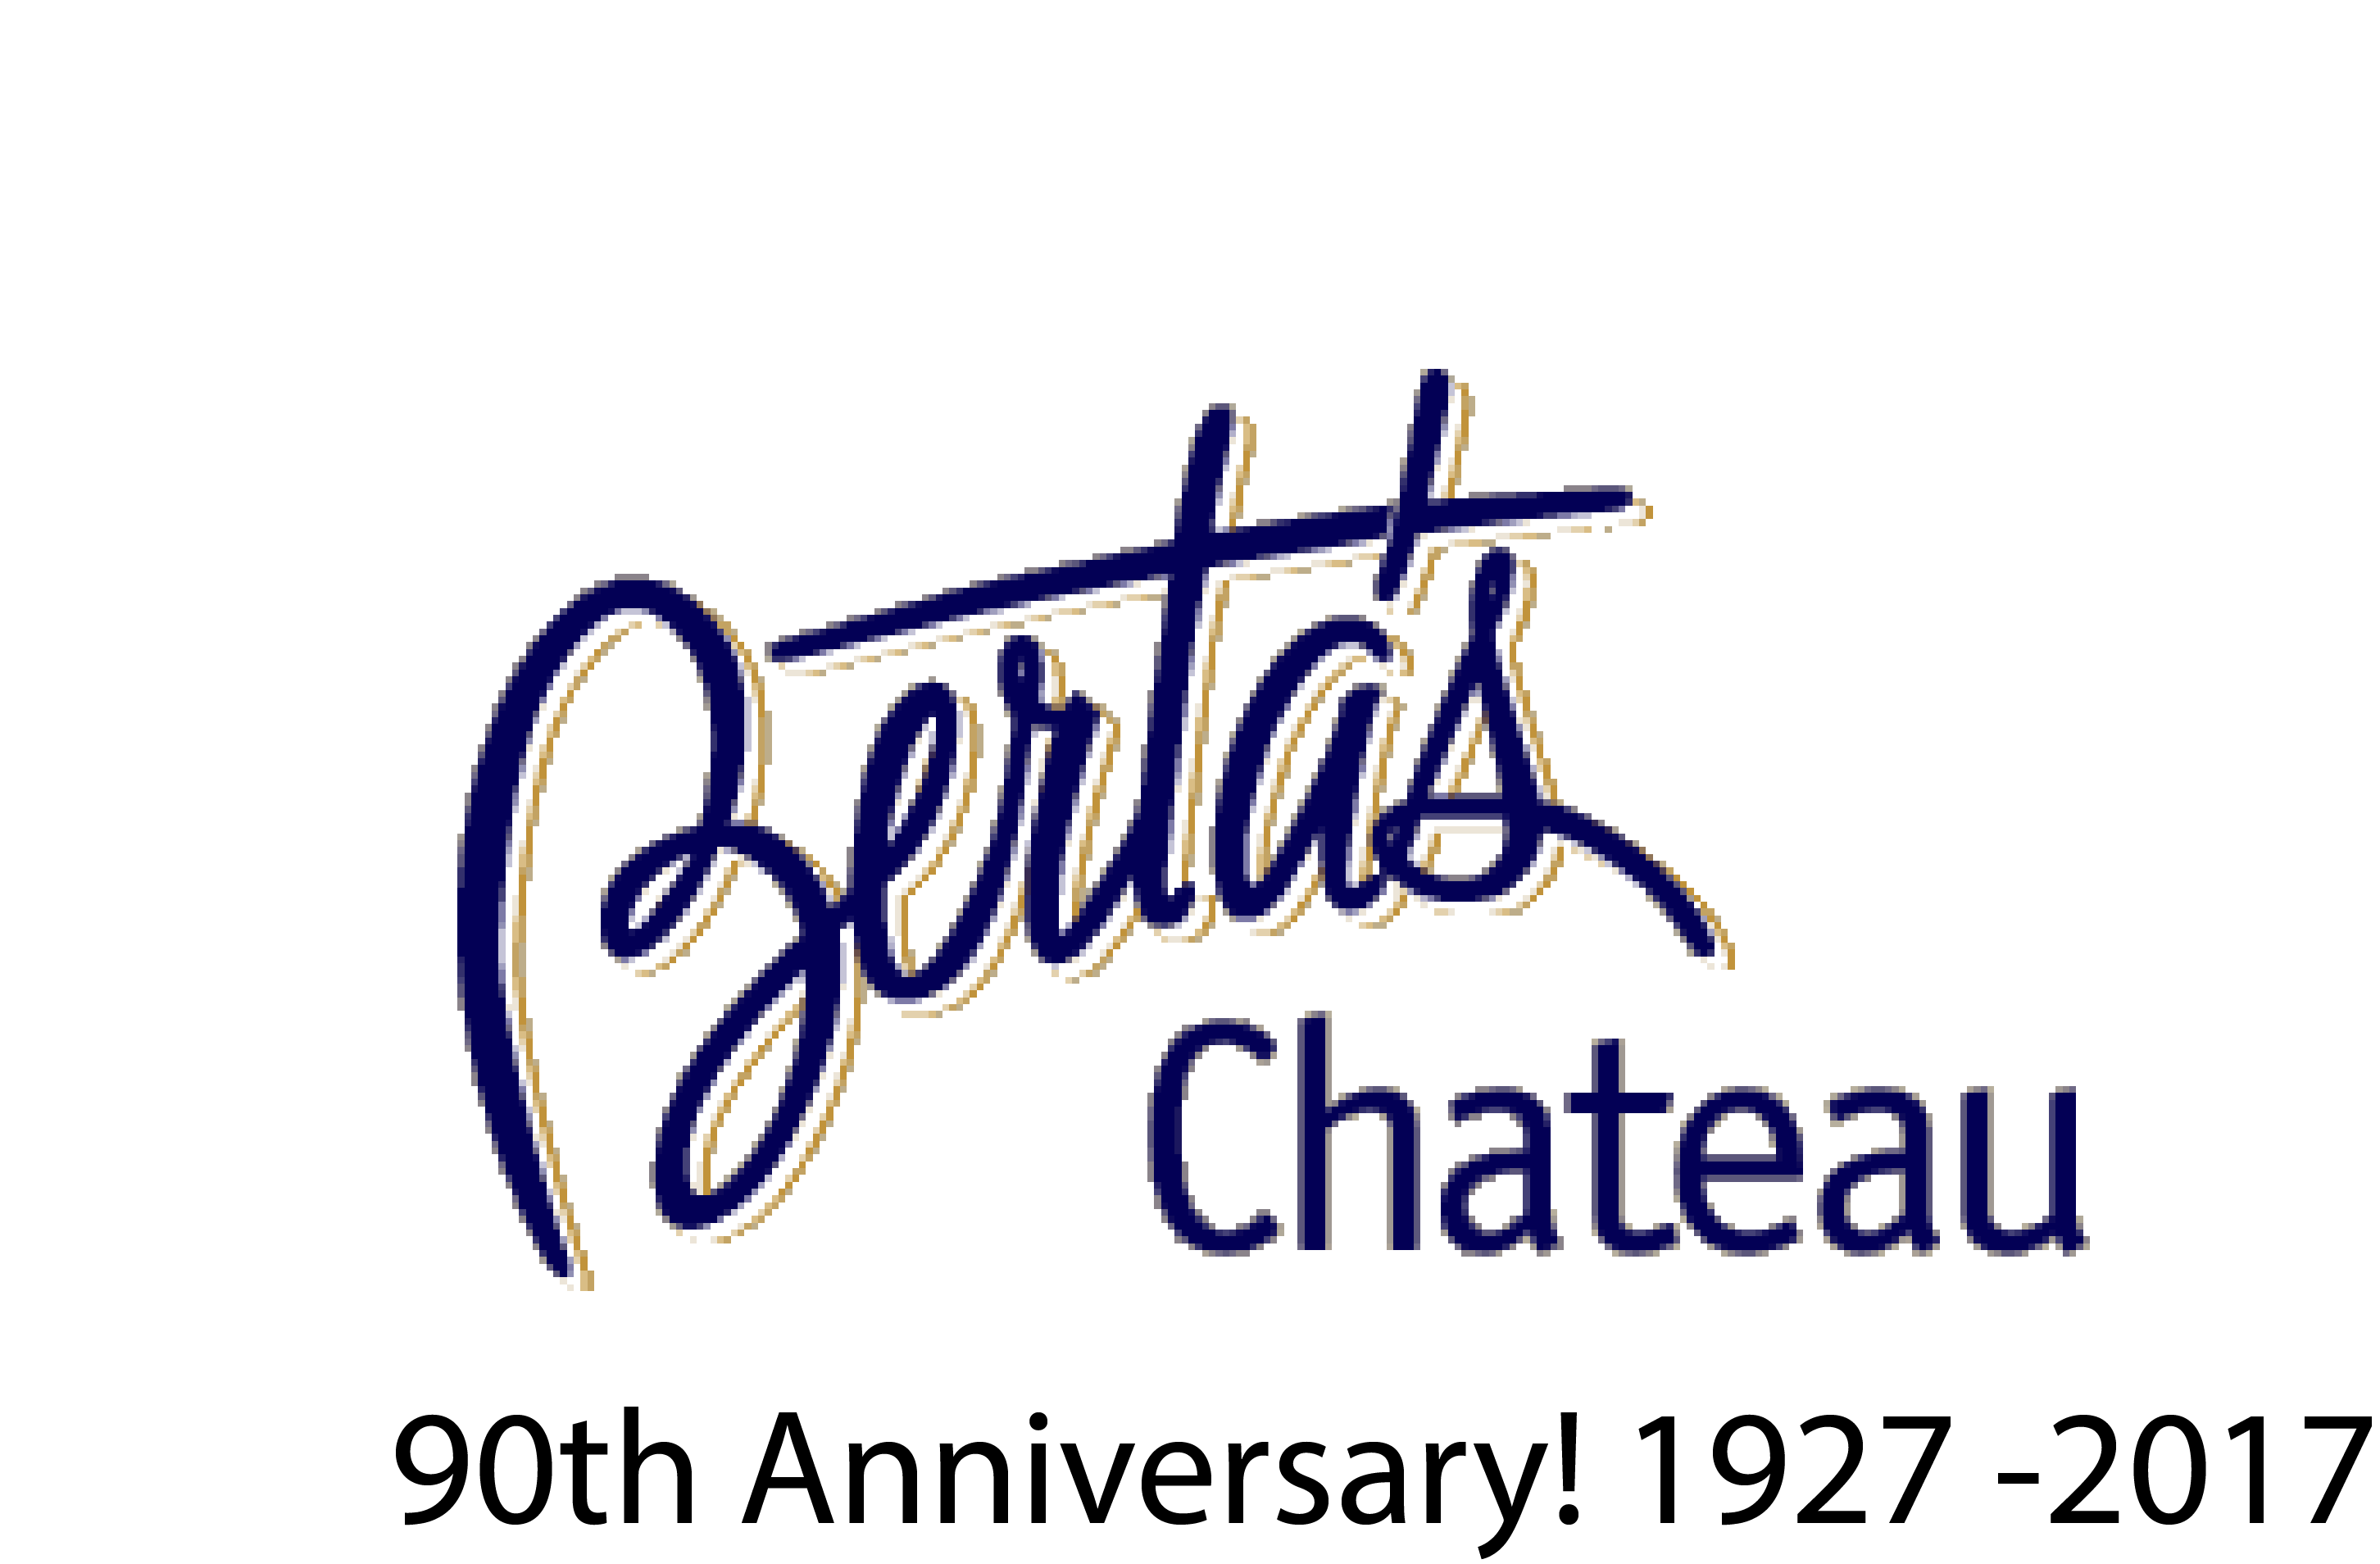 Berta's Chateau Wanaque, NJ